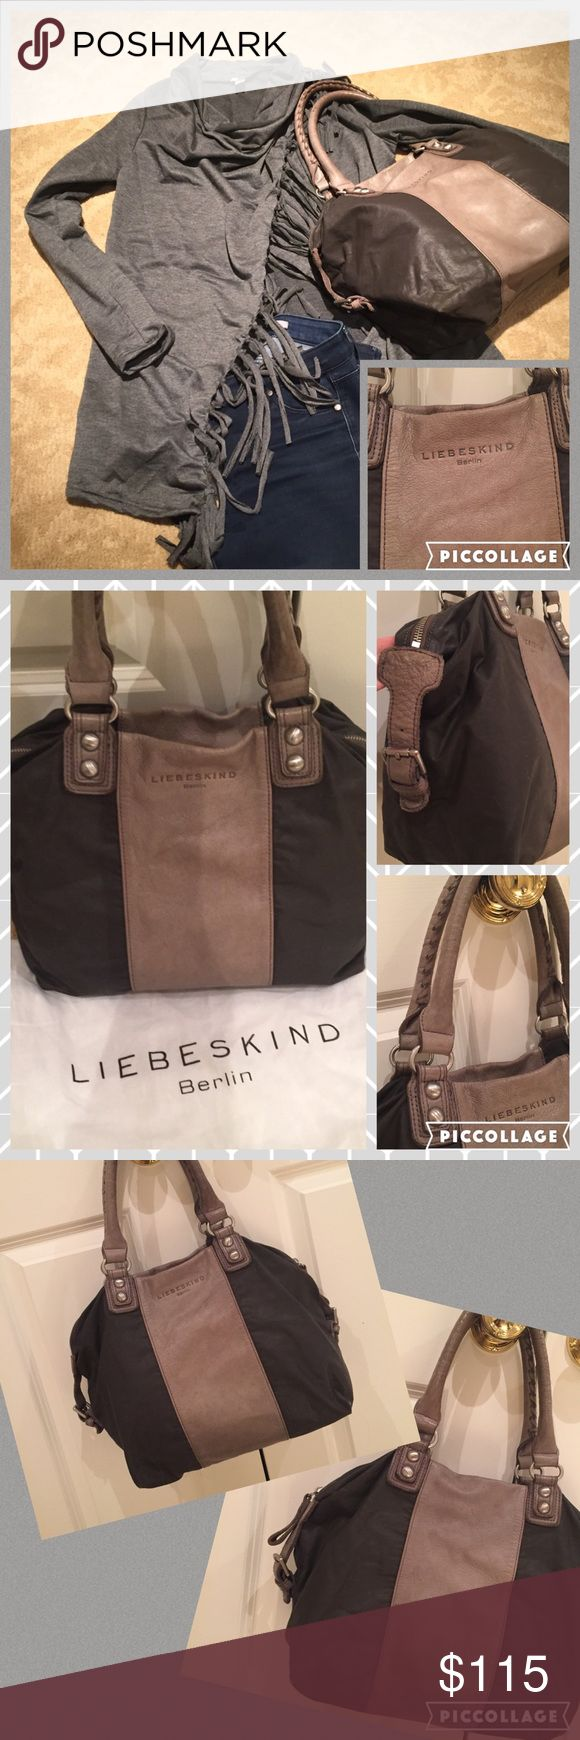 """💝Liebskind- Berlin pocketbook💝 Gray Liebskind- Berlin pocketbook. Center of the bag and straps are a gray soft cows leather. The remainder of the bag is a cotton type fabric. Gorgeous braided detail on the straps, cool silver details, and leather buckles on sides. 8.5"""" shoulder drop and bag measures approx 15x12. Gentle ware. Comes w dust bag. Liebeskind Bags Shoulder Bags"""